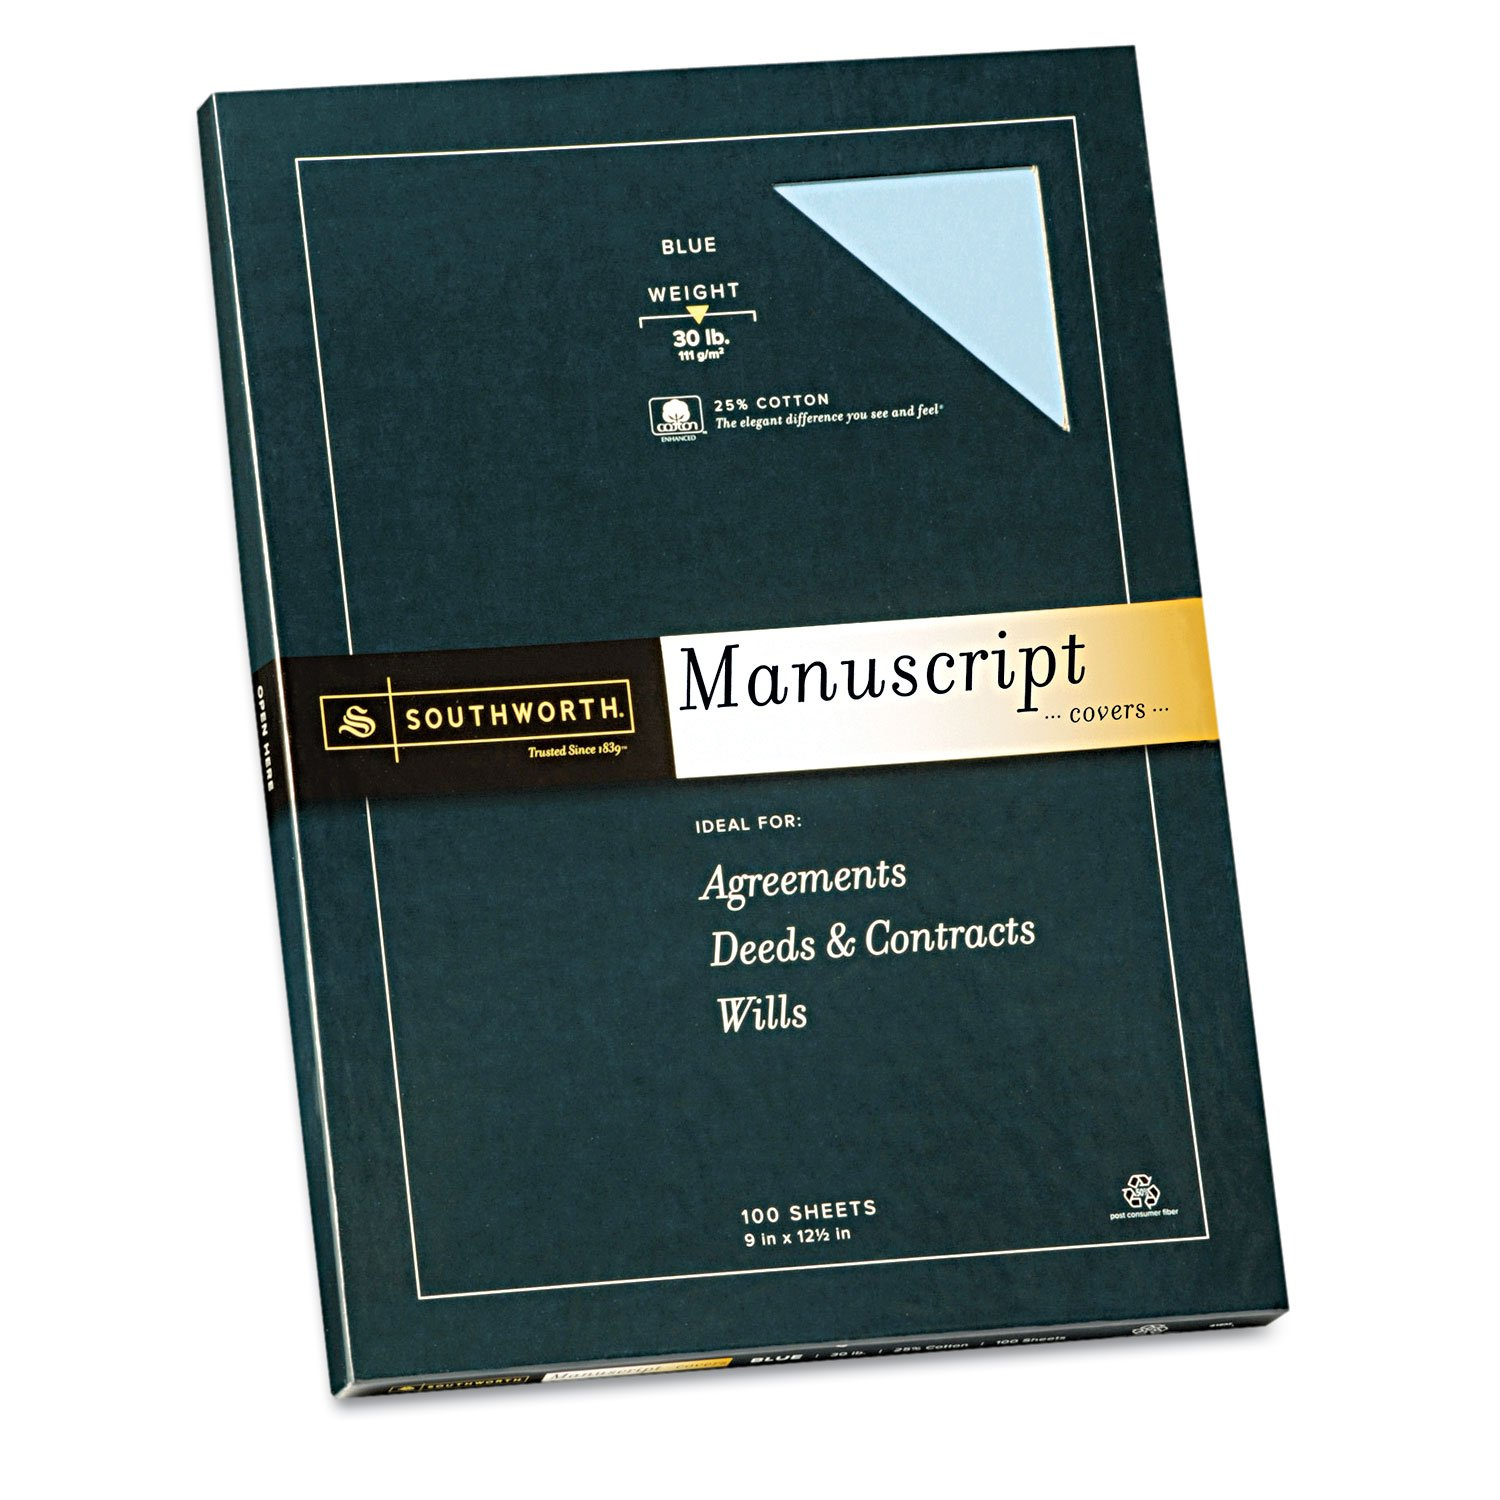 SOU41SM - Southworth 25% Cotton Manuscript Covers